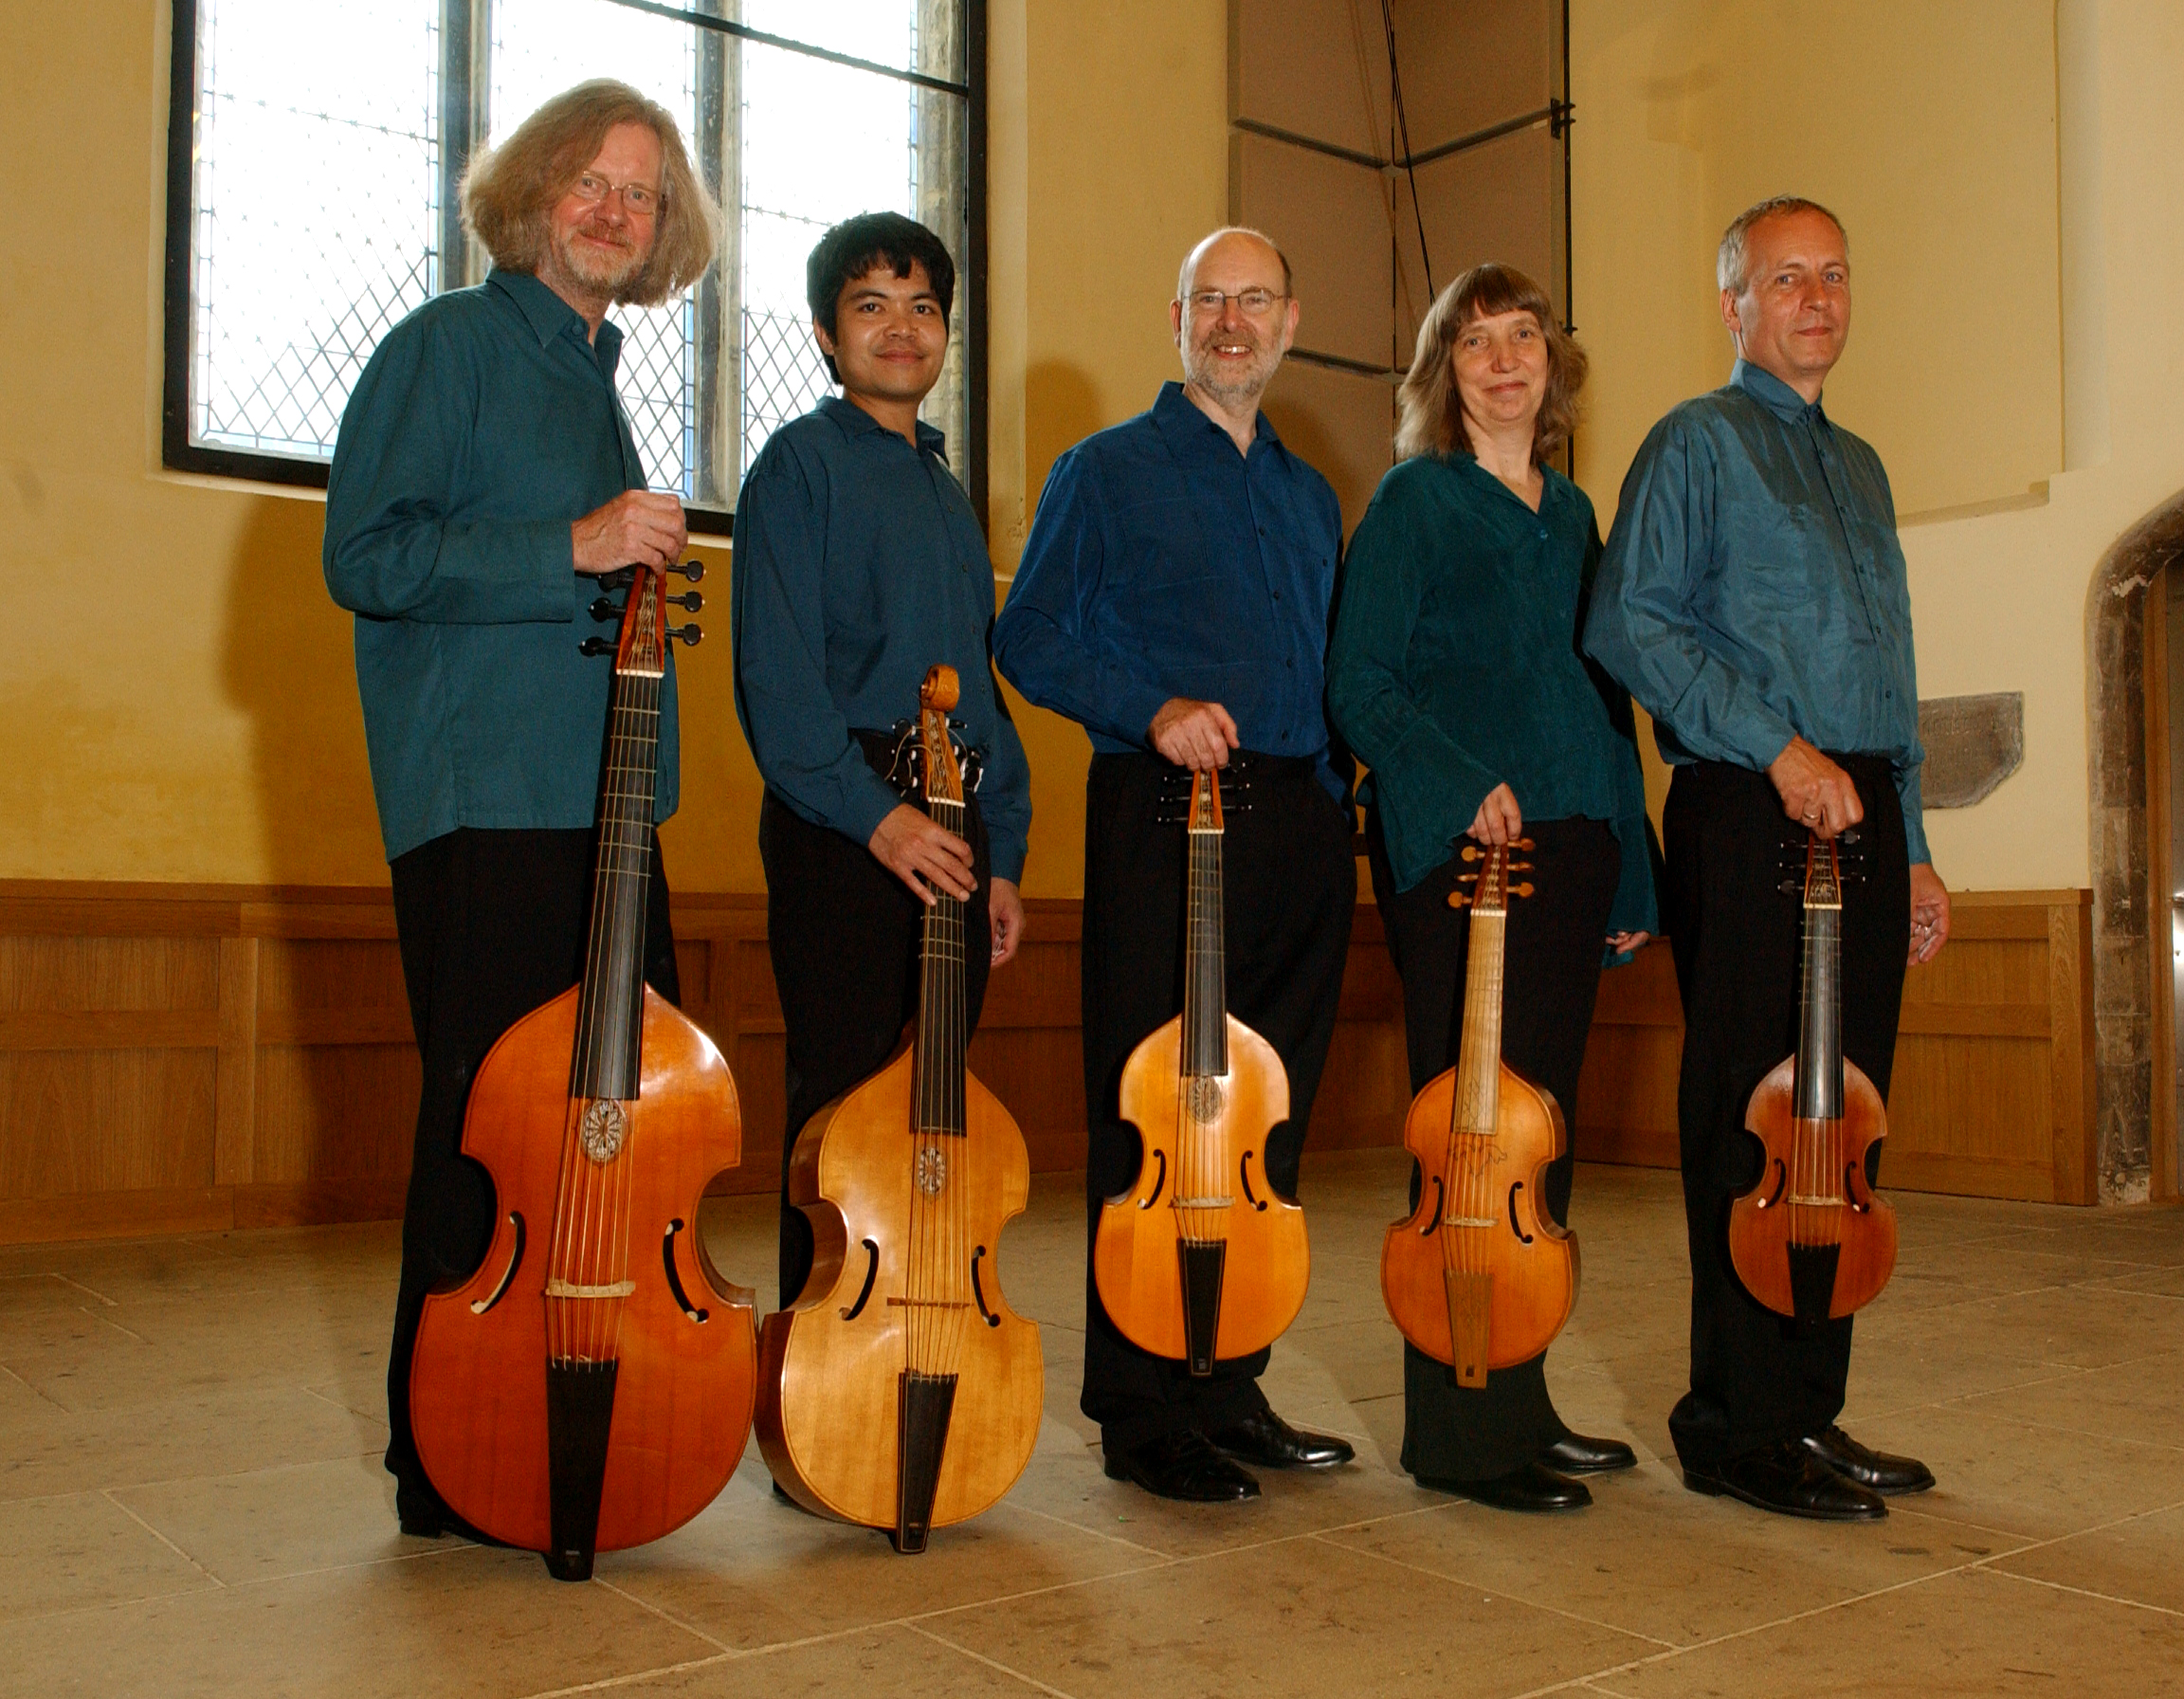 Photo: The Rose Consort of Viols (United Kingdom)